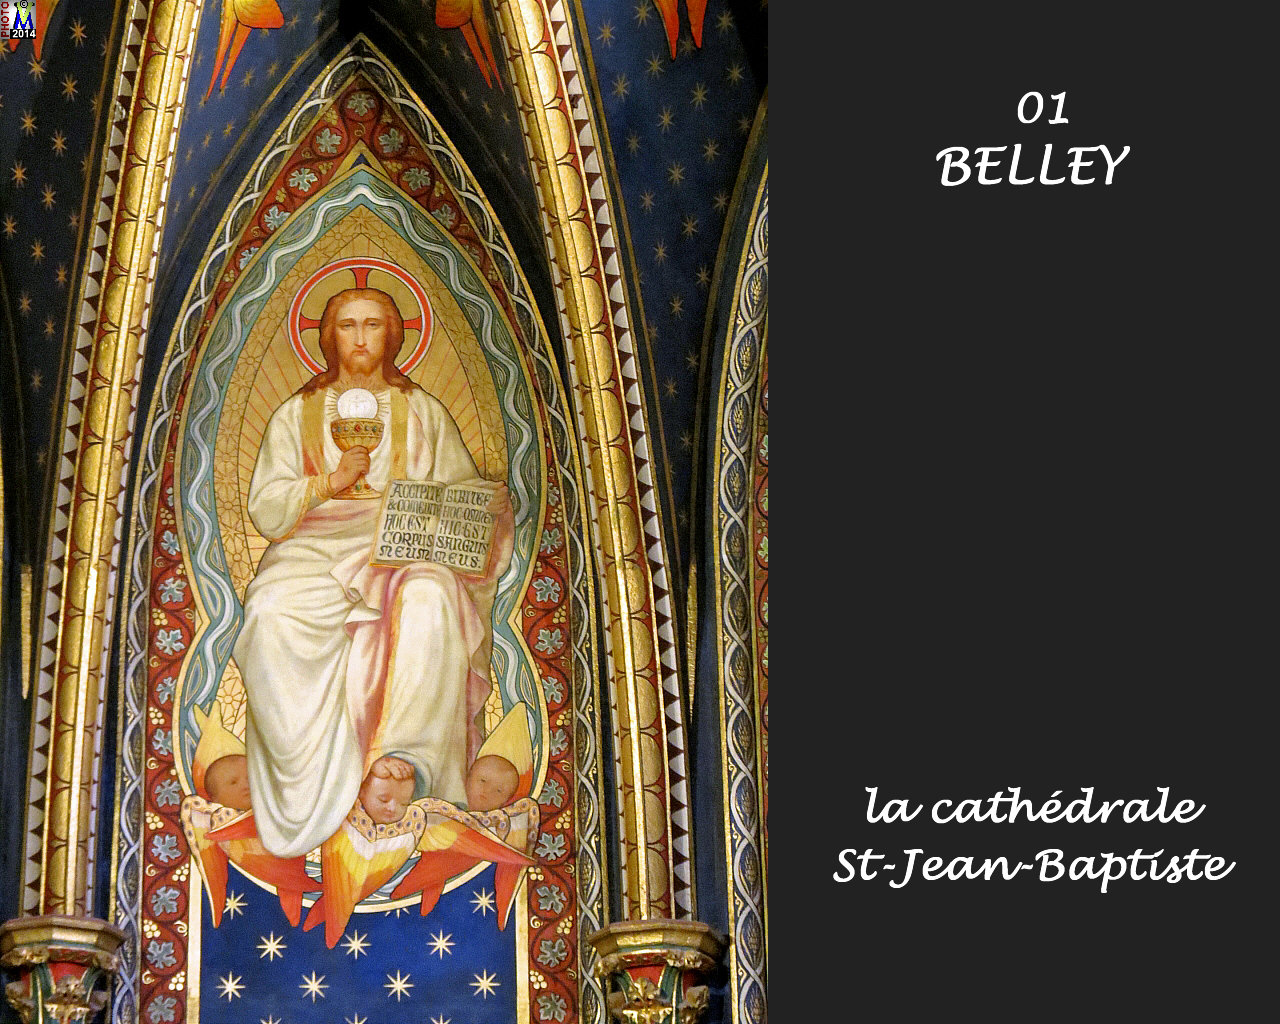 01BELLEY_cathedrale_232.jpg